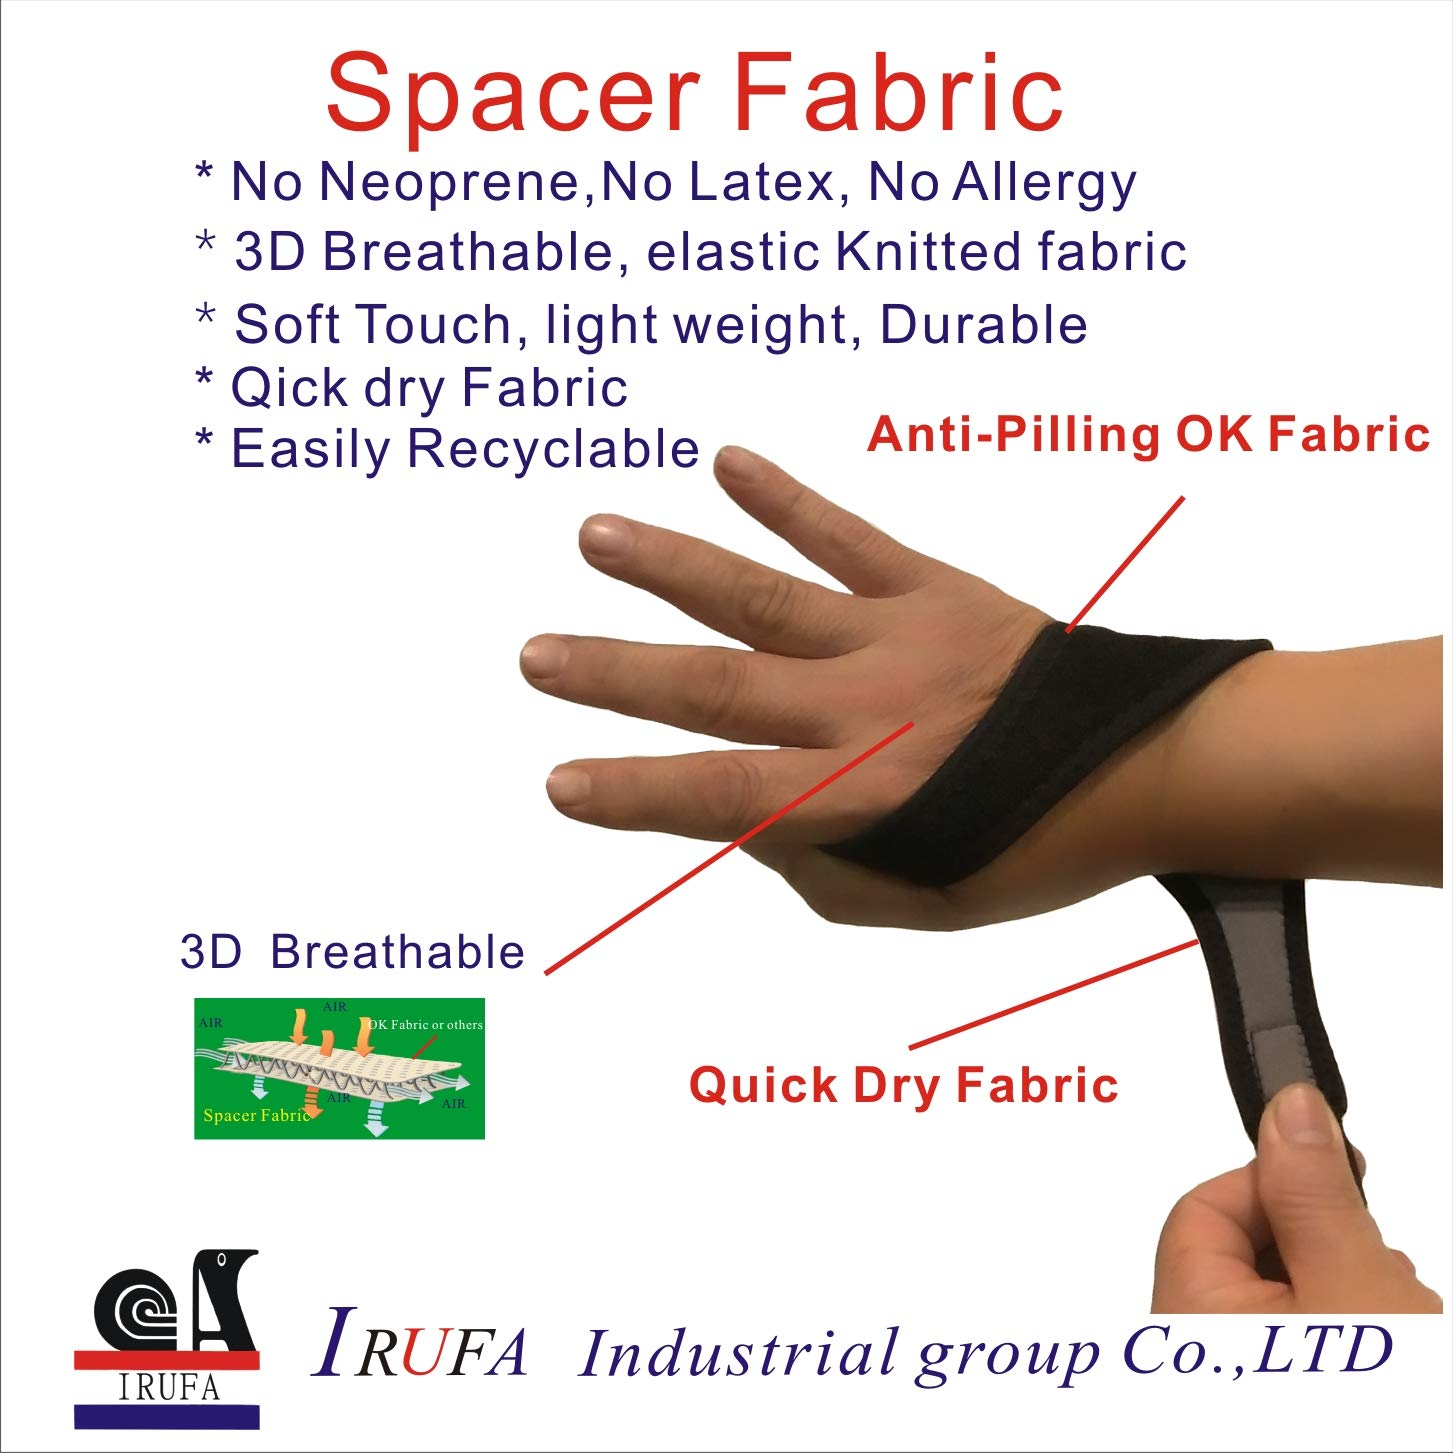 IRUFA,WR-OS-17,3D Breathable Spacer Fabric Wrist Brace, for TFCC Tear- Triangular Fibrocartilage Complex Injuries, Ulnar Sided Wrist Pain, Weight Bearing Strain, One PCS (Spacer Fabric) by IRUFA (Image #6)